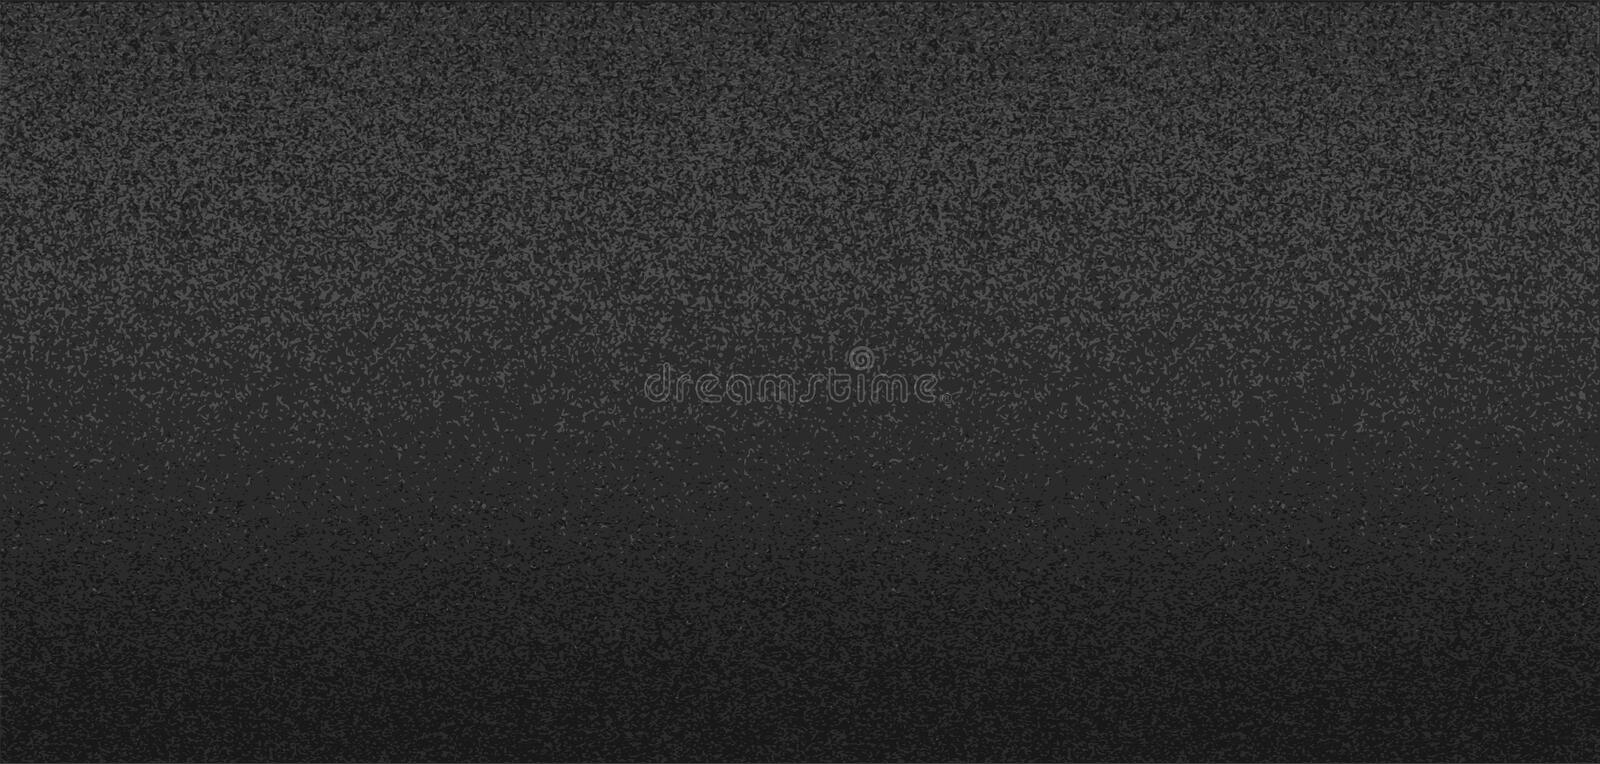 Black Metal Texture Smooth Dark Background Stock Illustrations 4 226 Black Metal Texture Smooth Dark Background Stock Illustrations Vectors Clipart Dreamstime Find the perfect black metal texture stock photos and editorial news pictures from getty images. dreamstime com